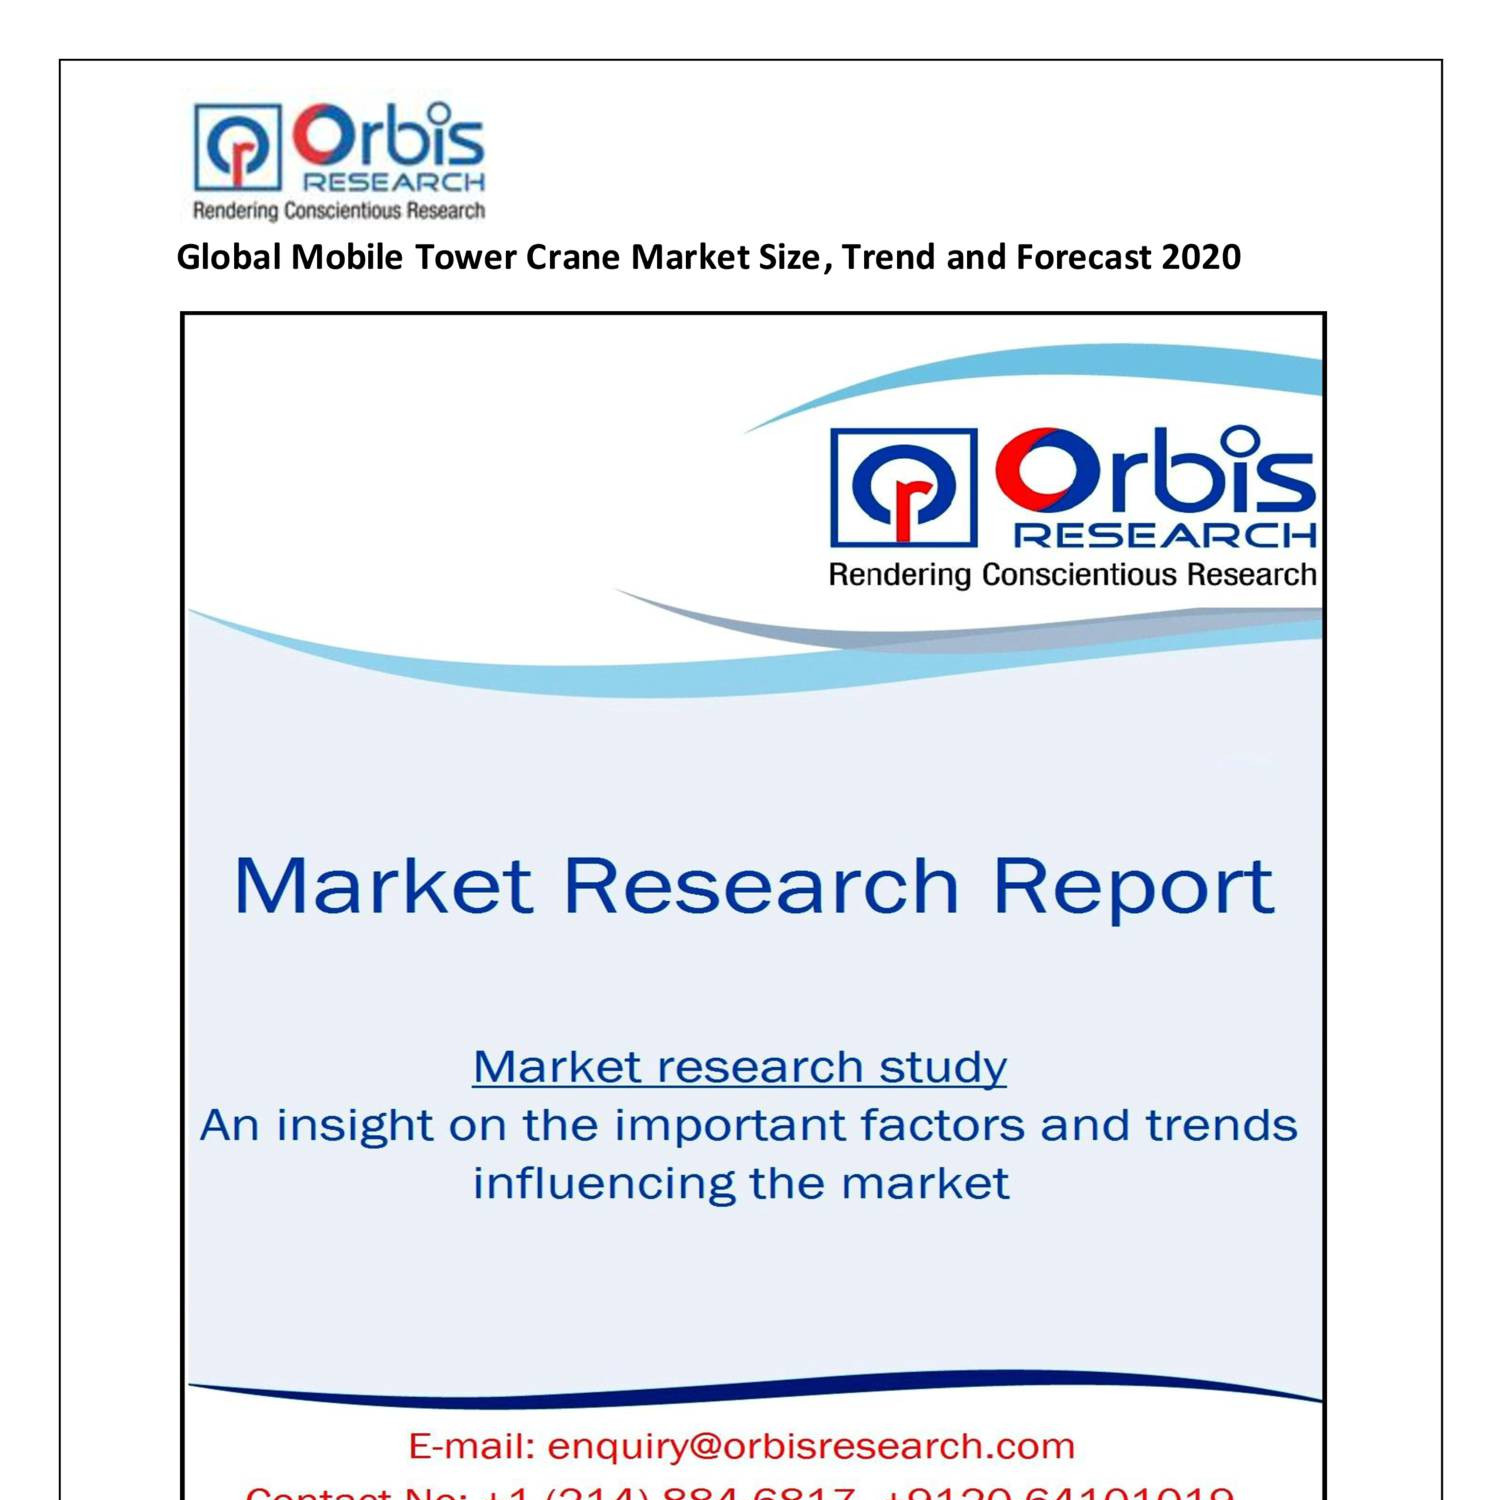 Global Mobile Tower Crane Market Size, Trend and Forecast 2020 pdf